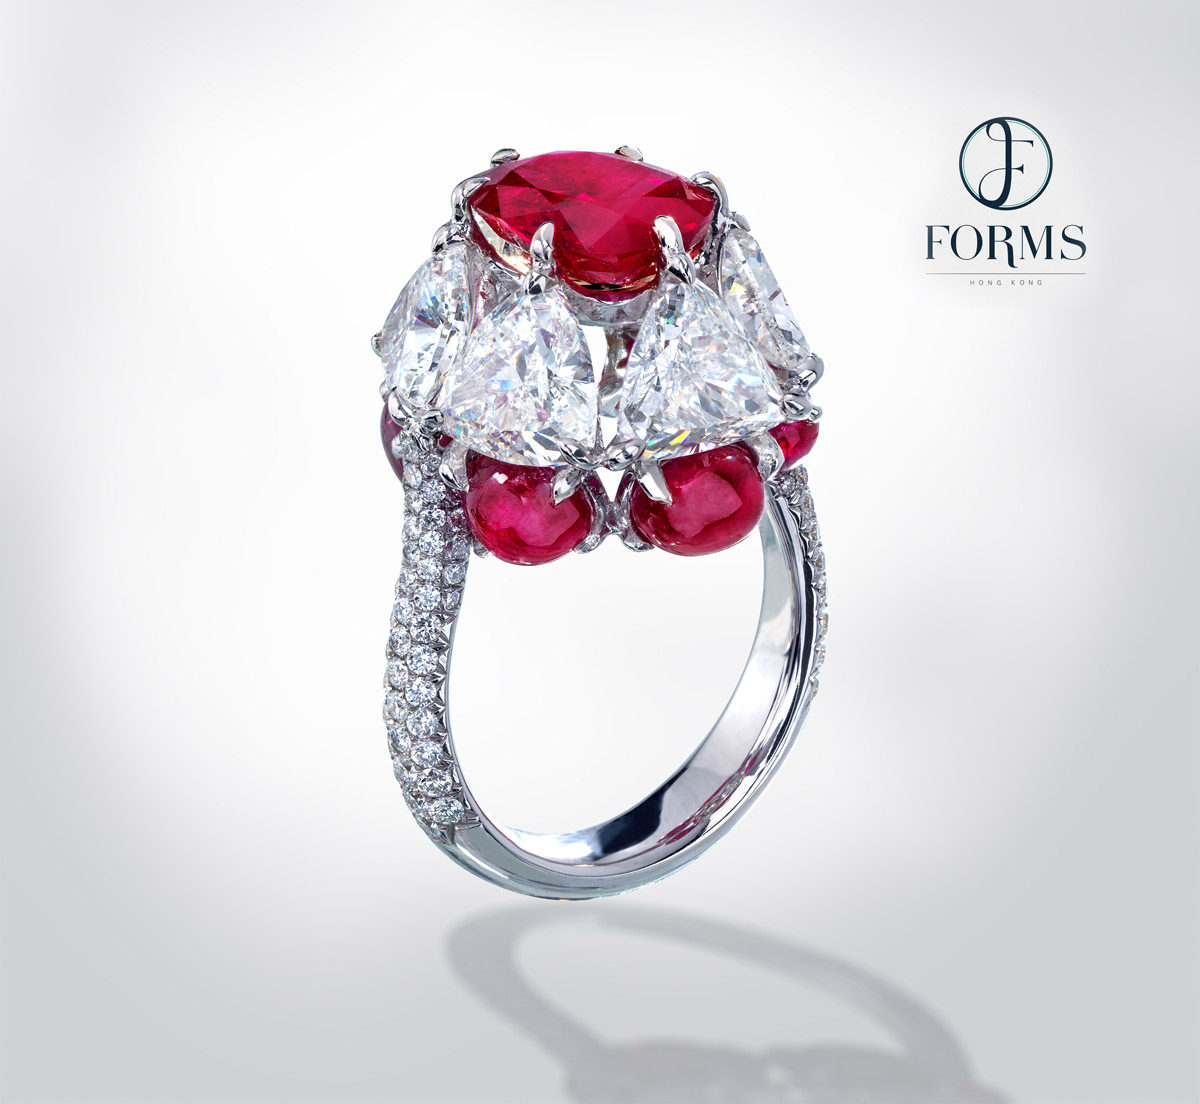 ring rings thread engagement femalefashionadvice corundum r comments hlhixka